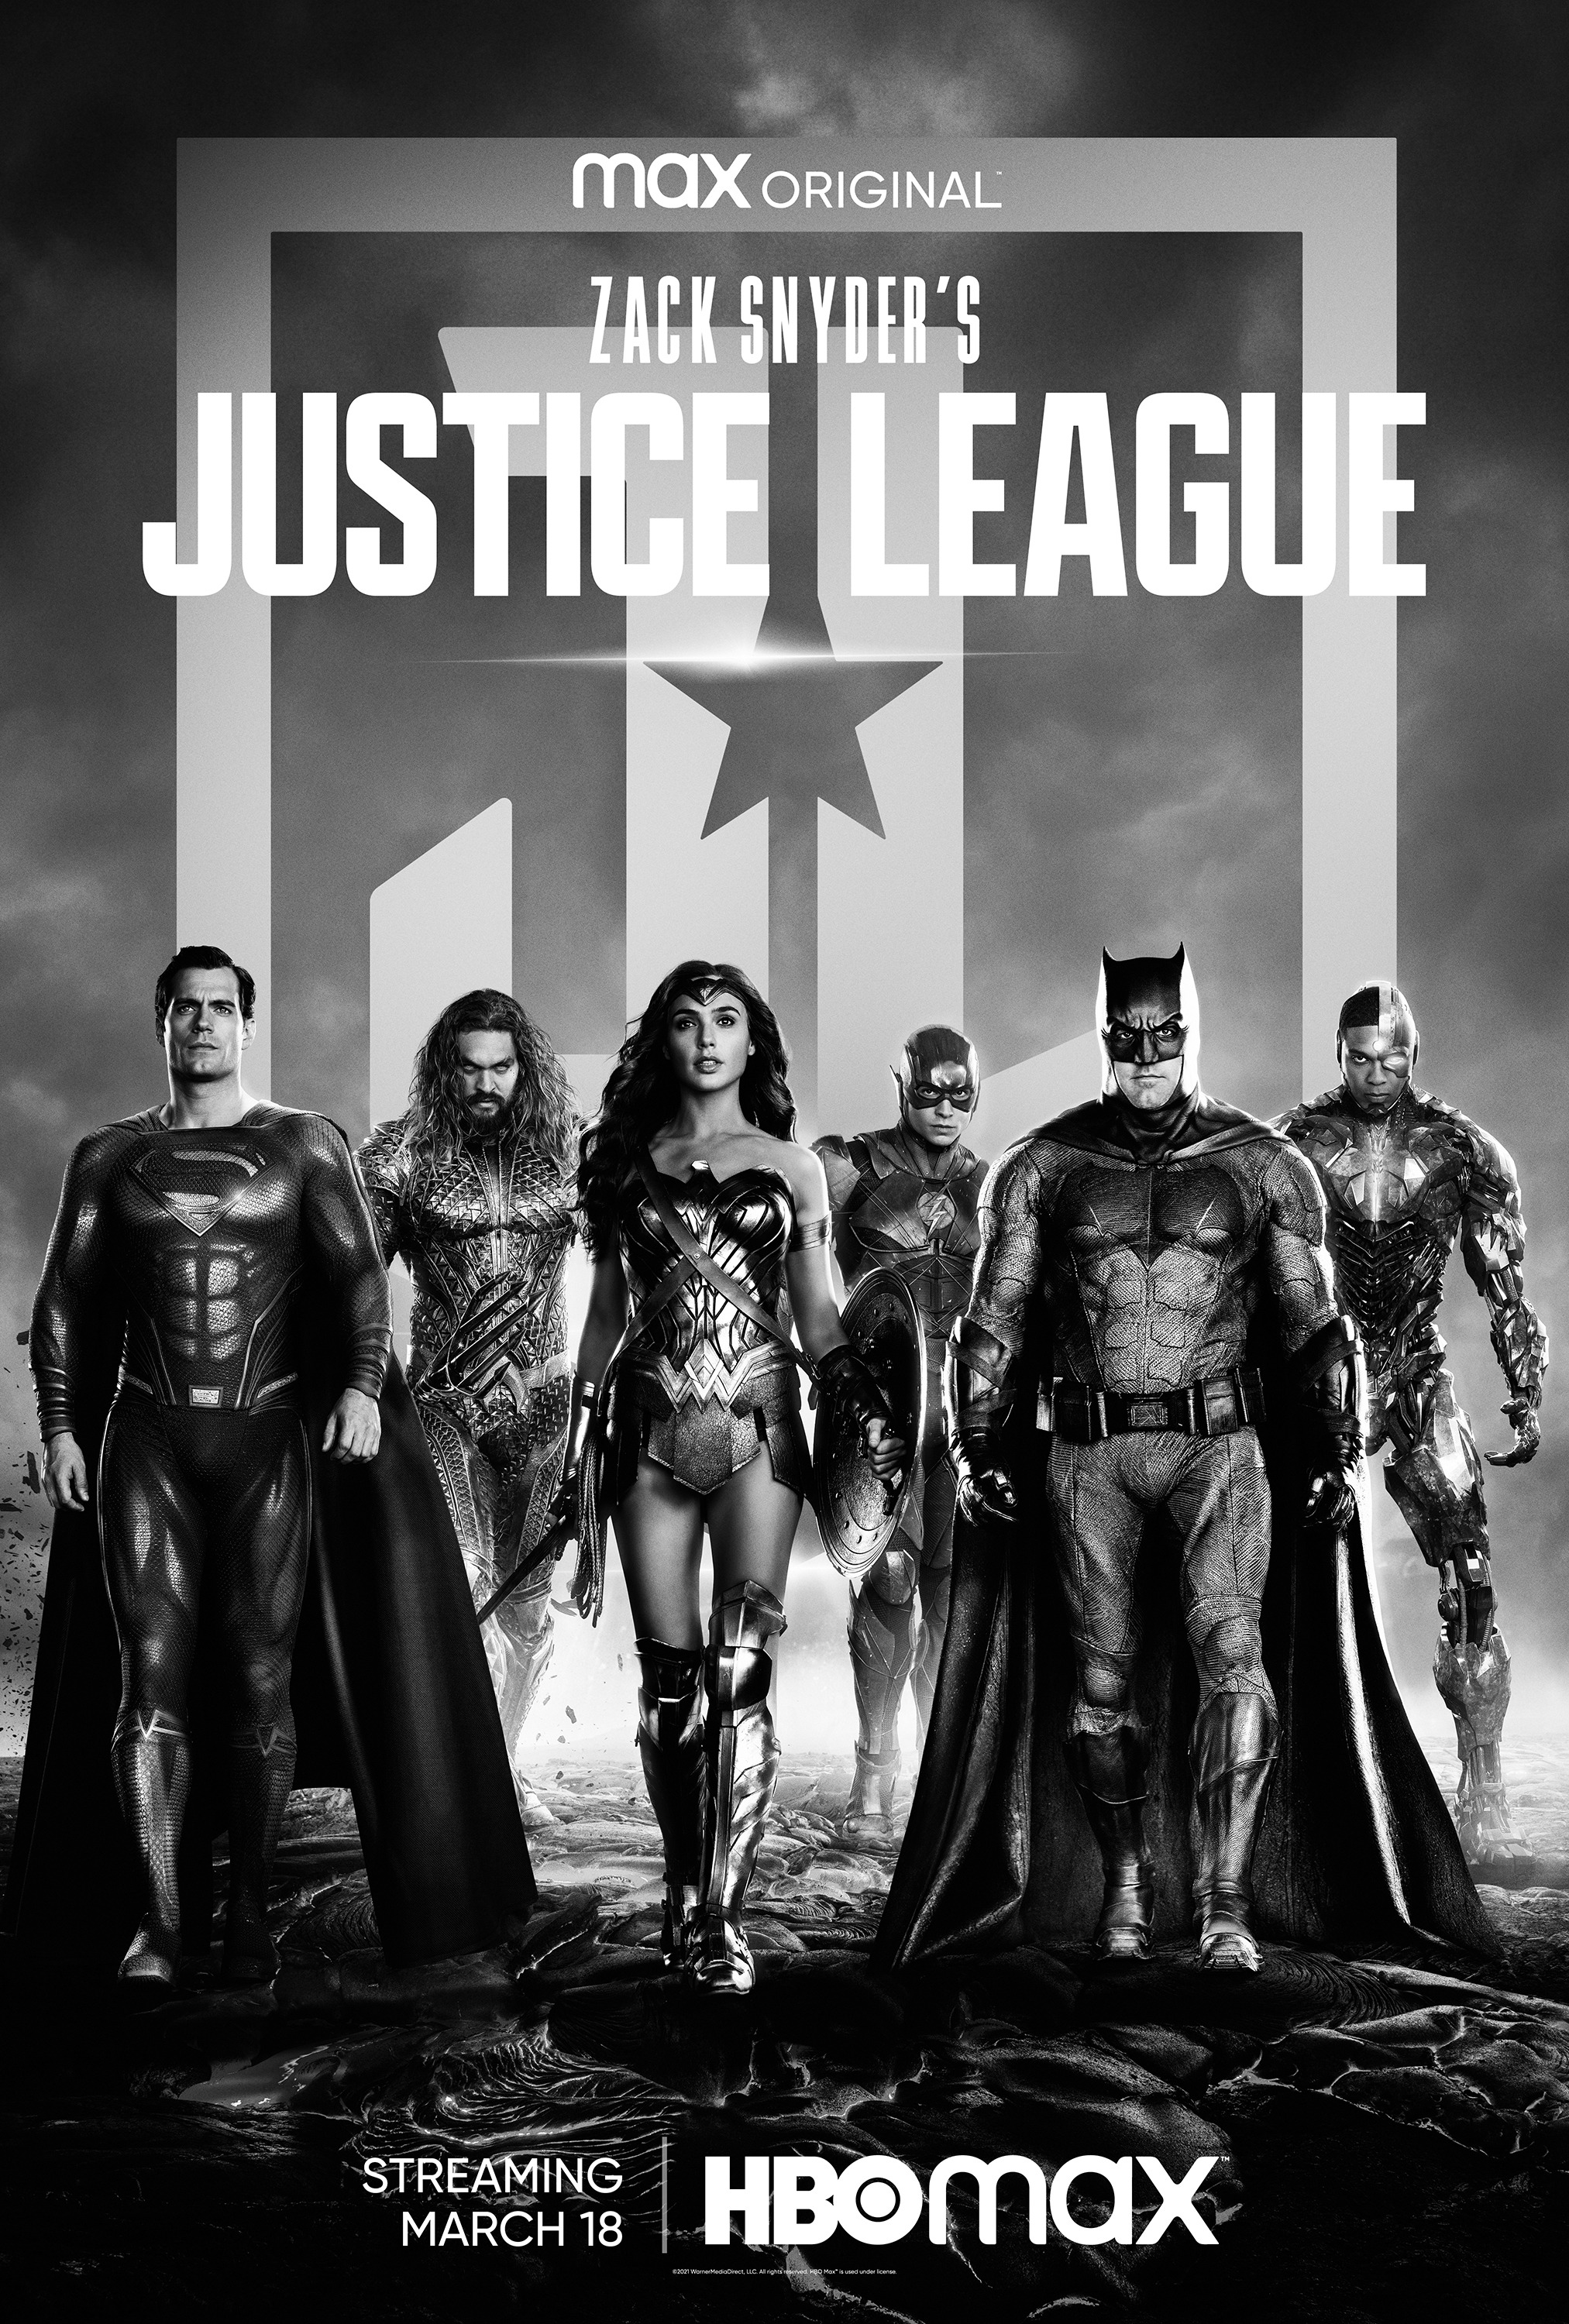 szmk_hbo_justice_league_snydercut_zack_snyder_batman_dc_comics_superman_aquaman_wonder_woman_cyborg_darkseid_12.jpg